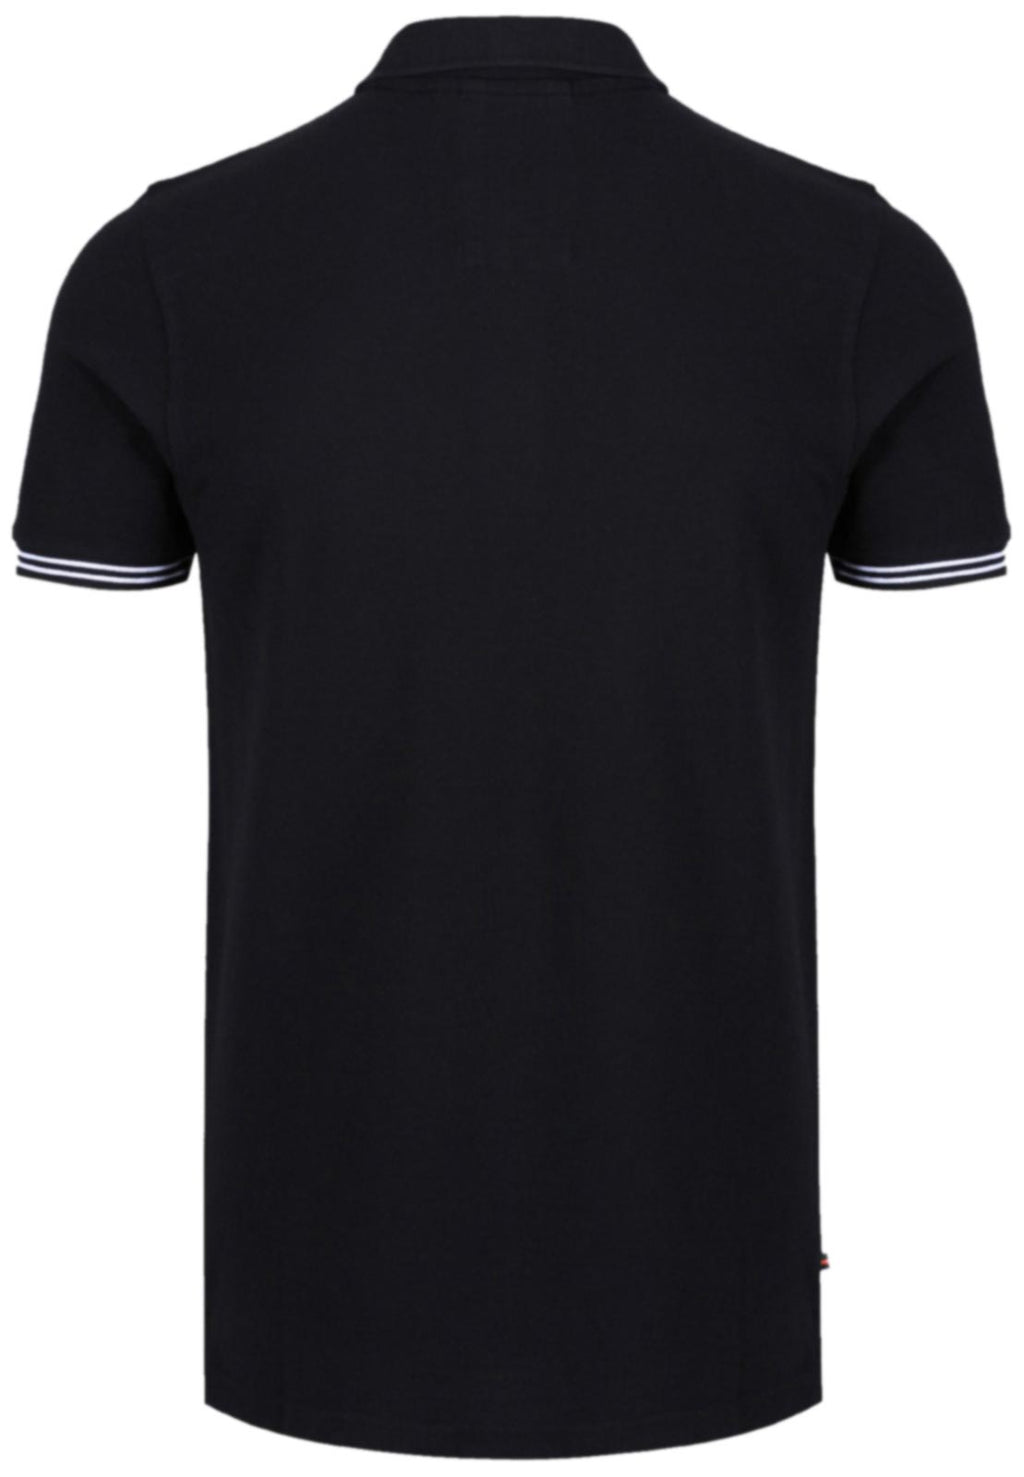 Luke 1977 New Mead Polo Shirt Black